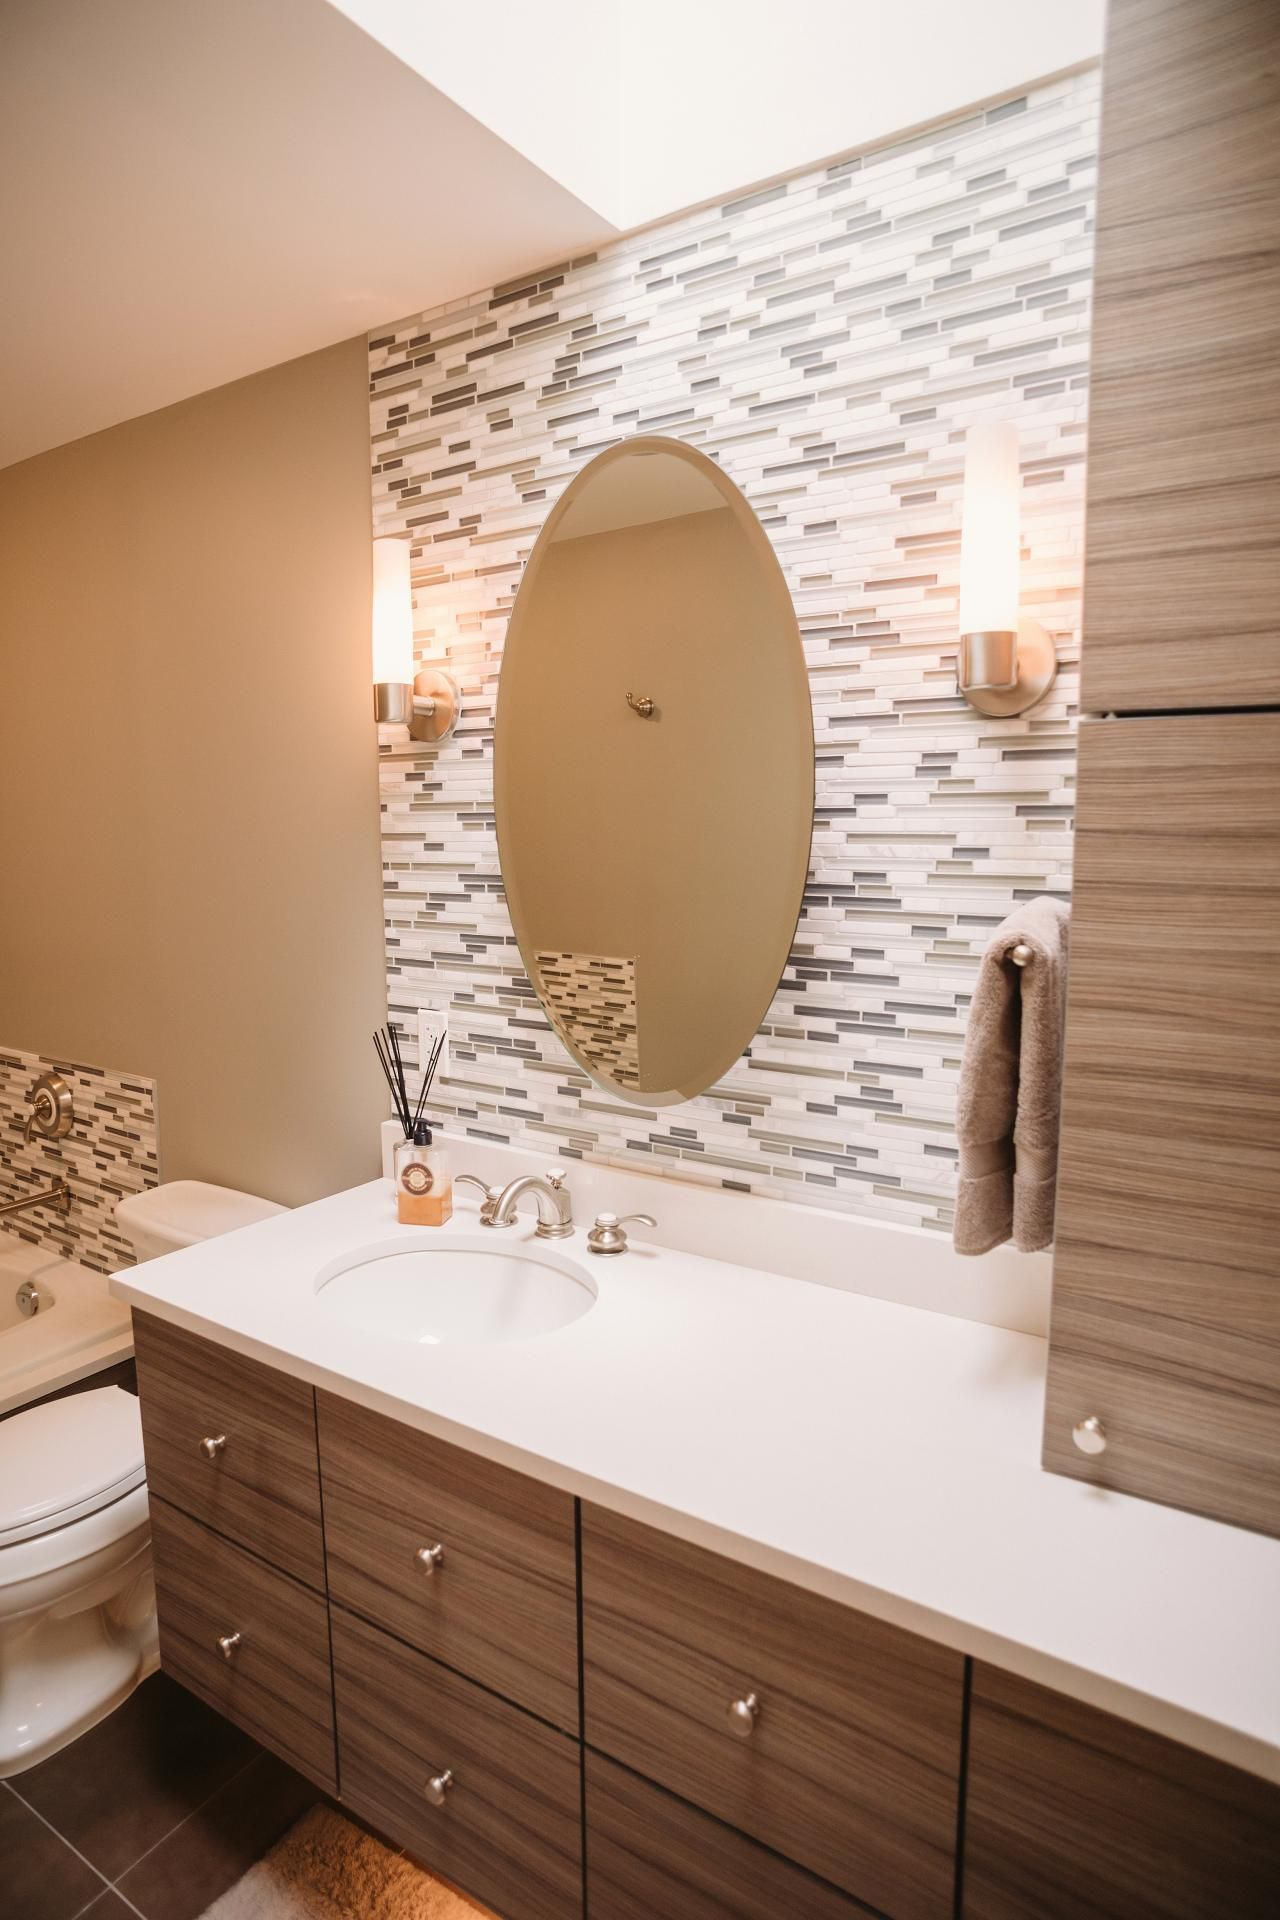 The attractive accent wall in this contemporary bathroom features thin tiles in white and neutral shades cylindrical sconces illuminate the space